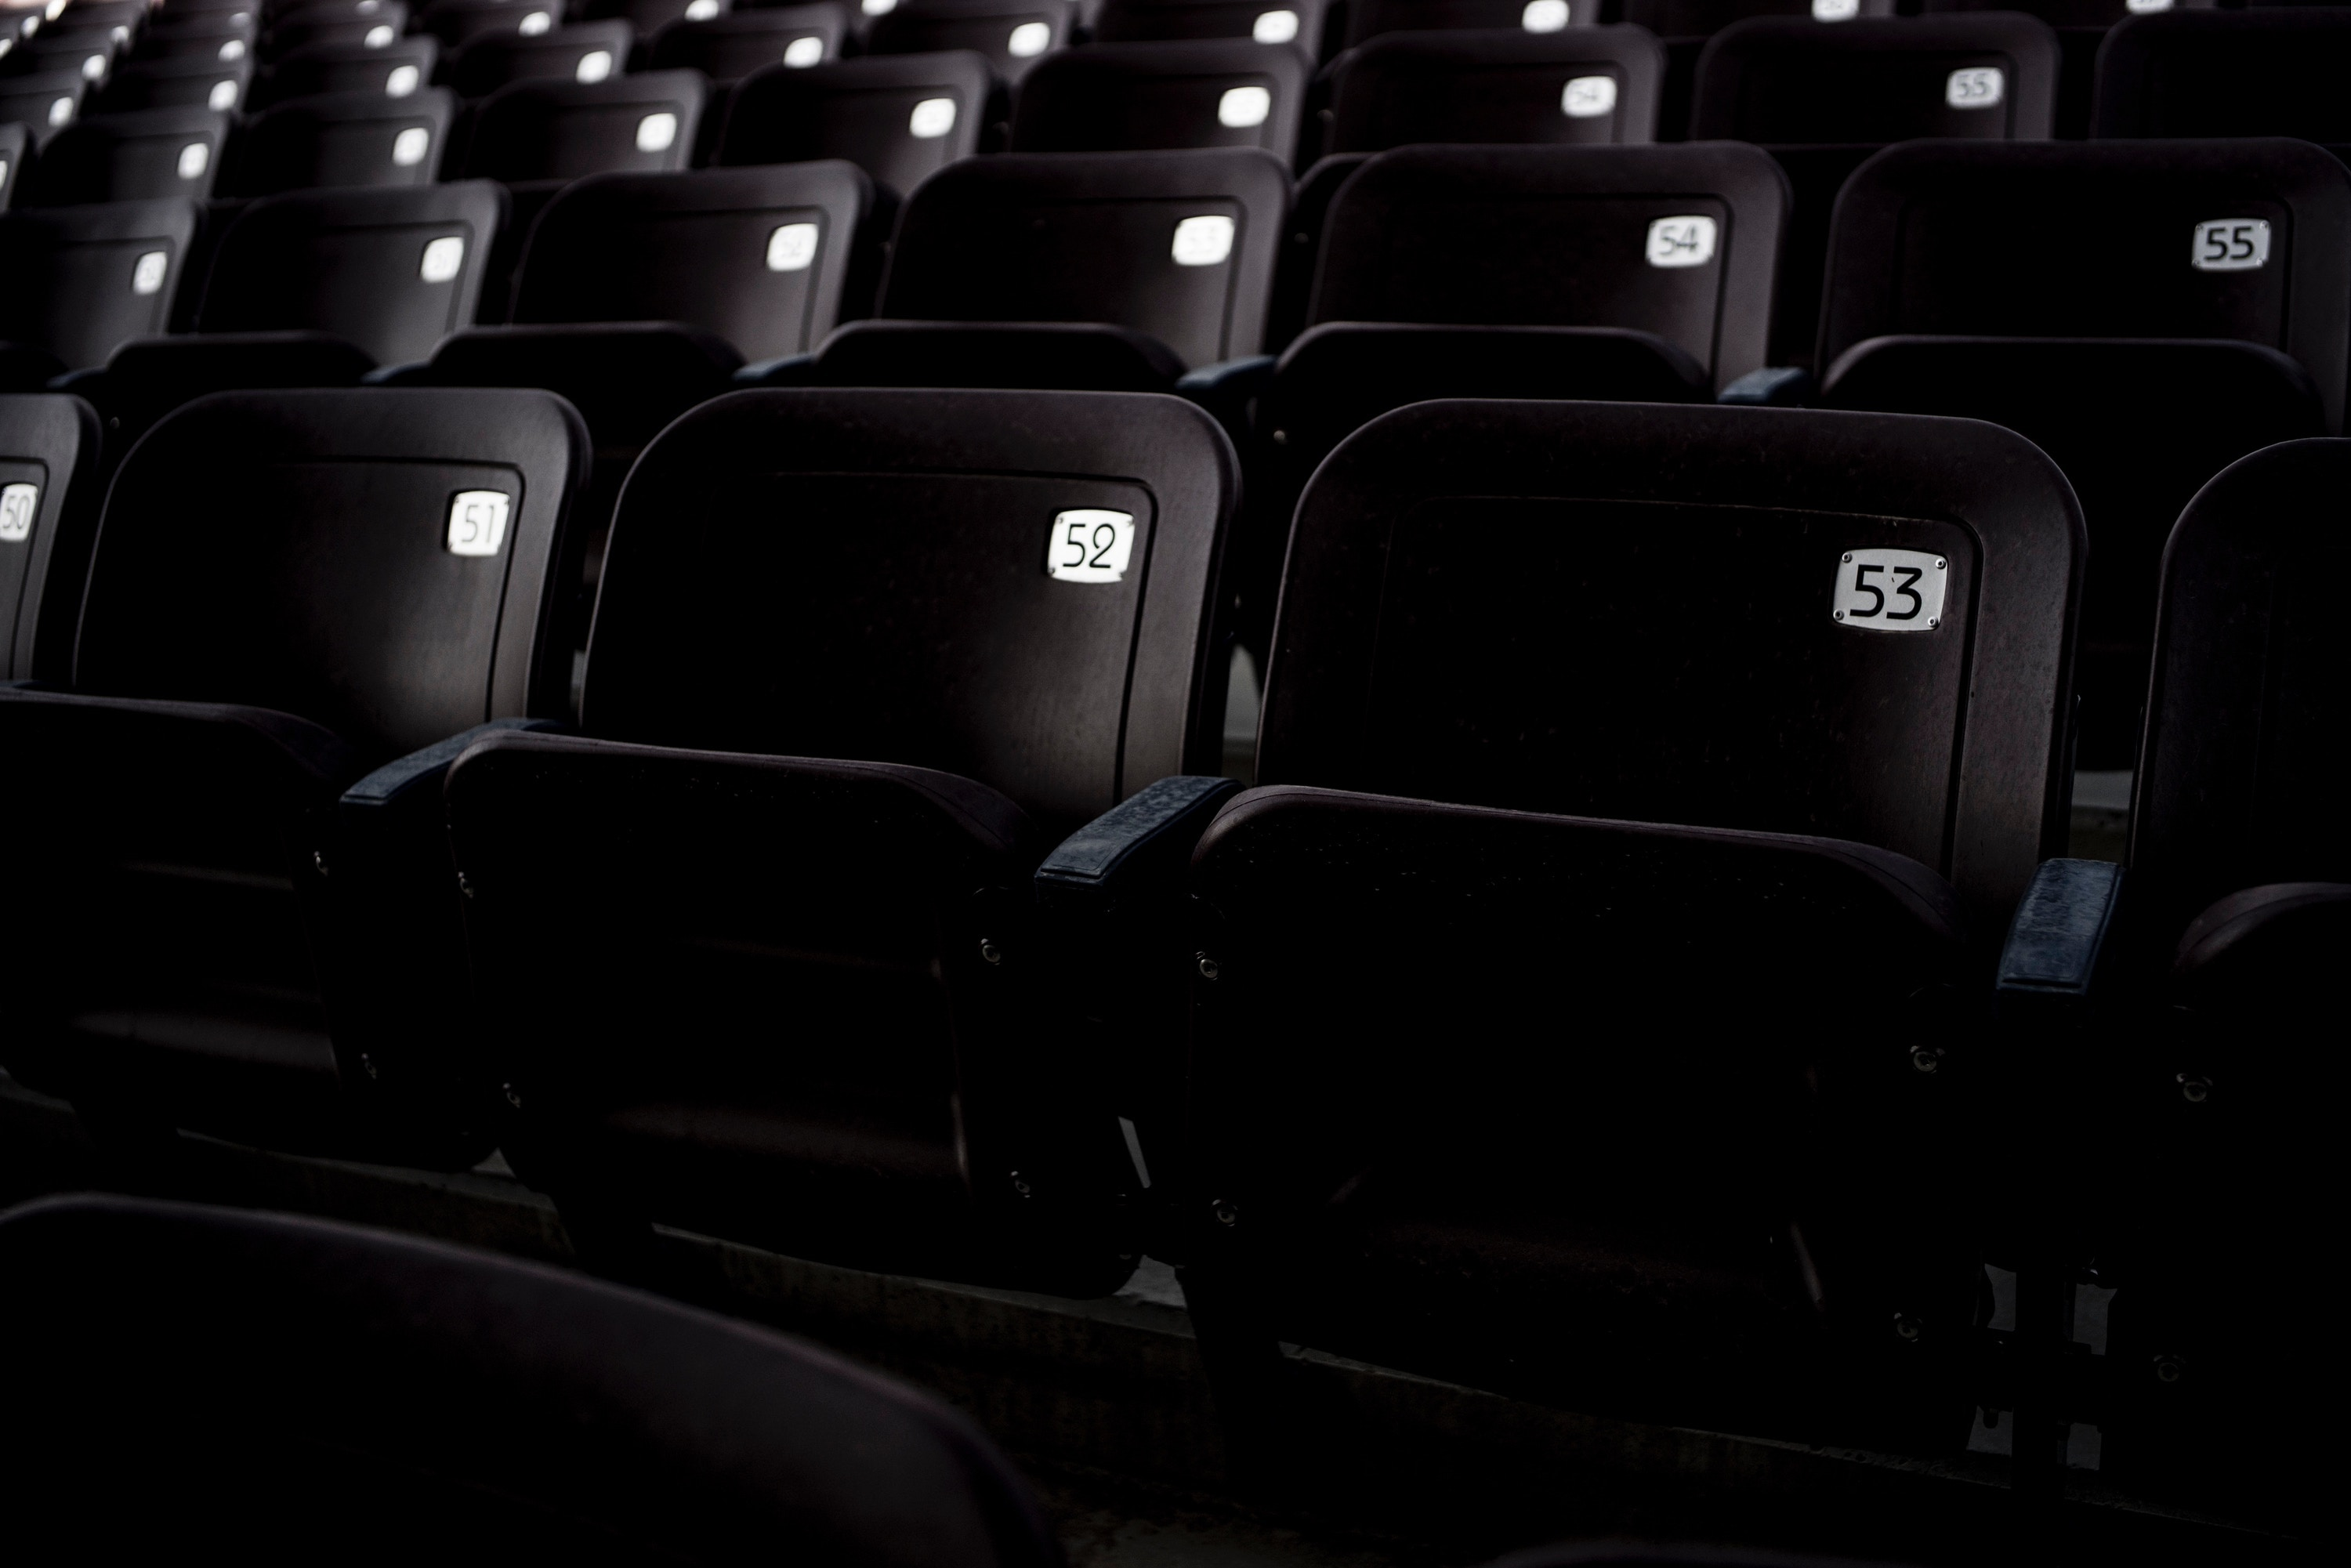 Dark theatre with black seats - each seat is empty put has a number on the back of the seat.